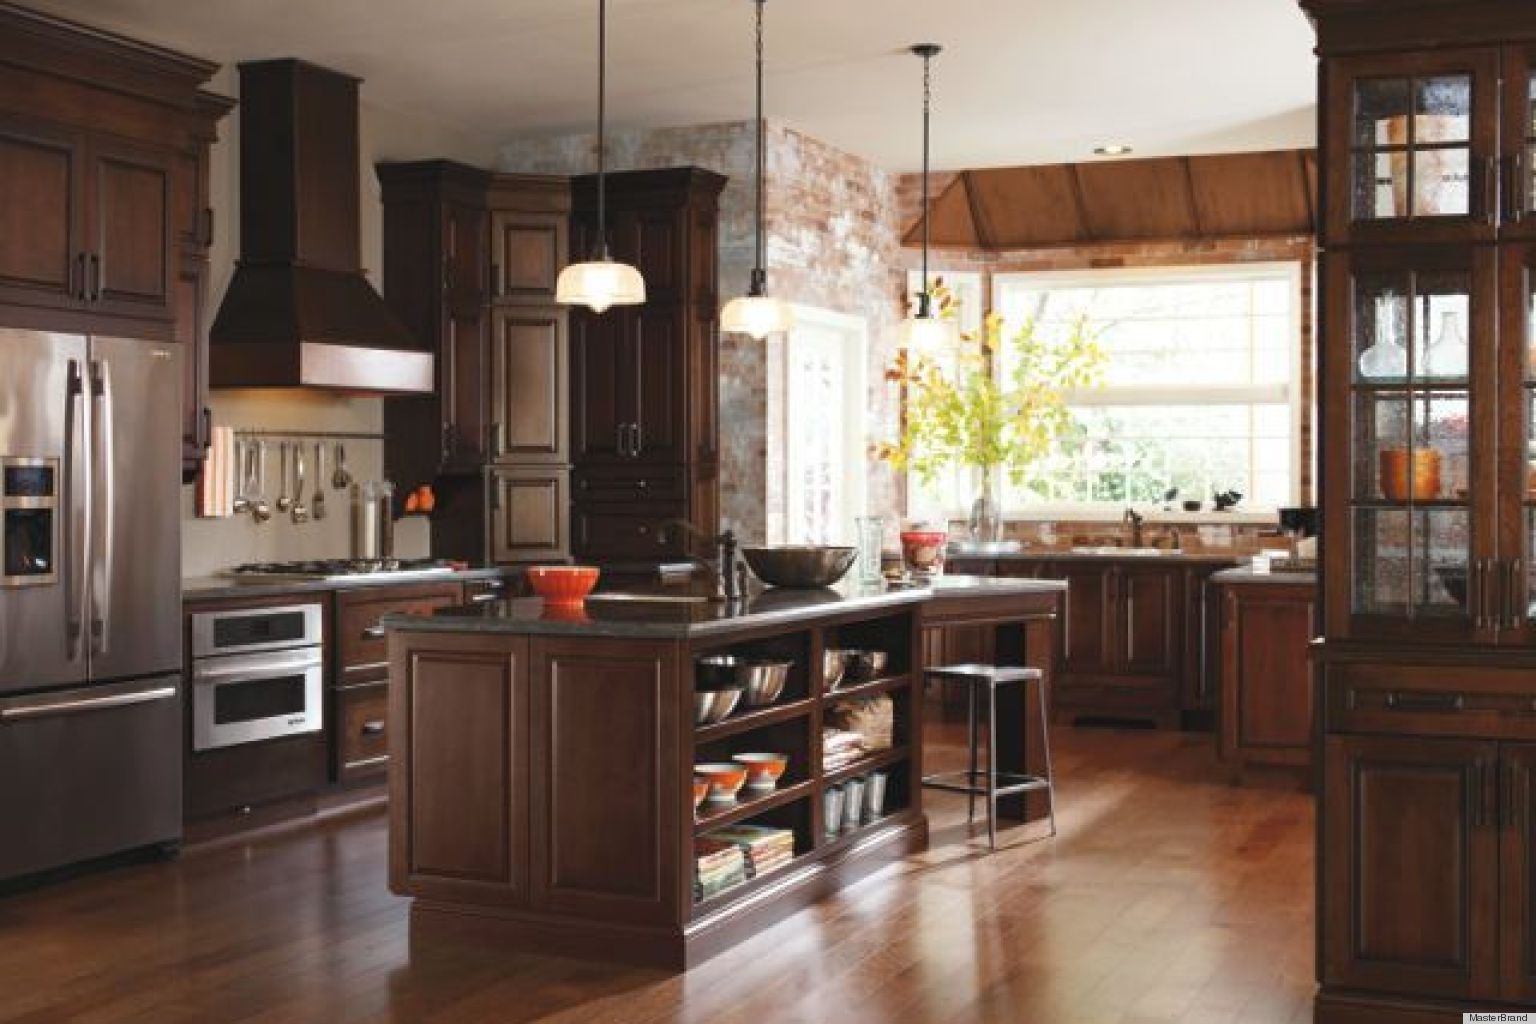 Black Friday Sales For Home Renovations